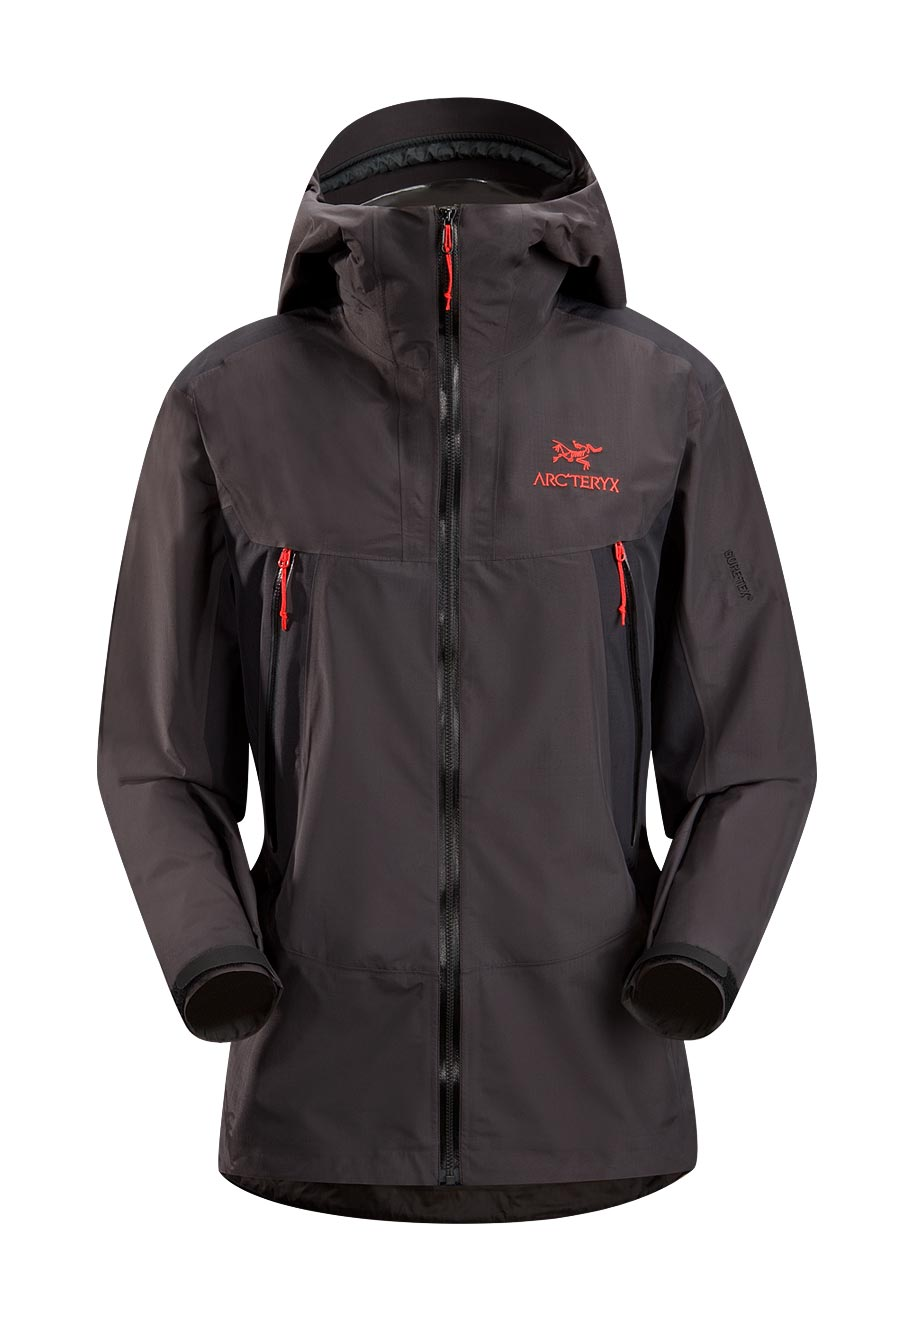 Arcteryx Blackbird Alpha SL Hybrid Jacket - New